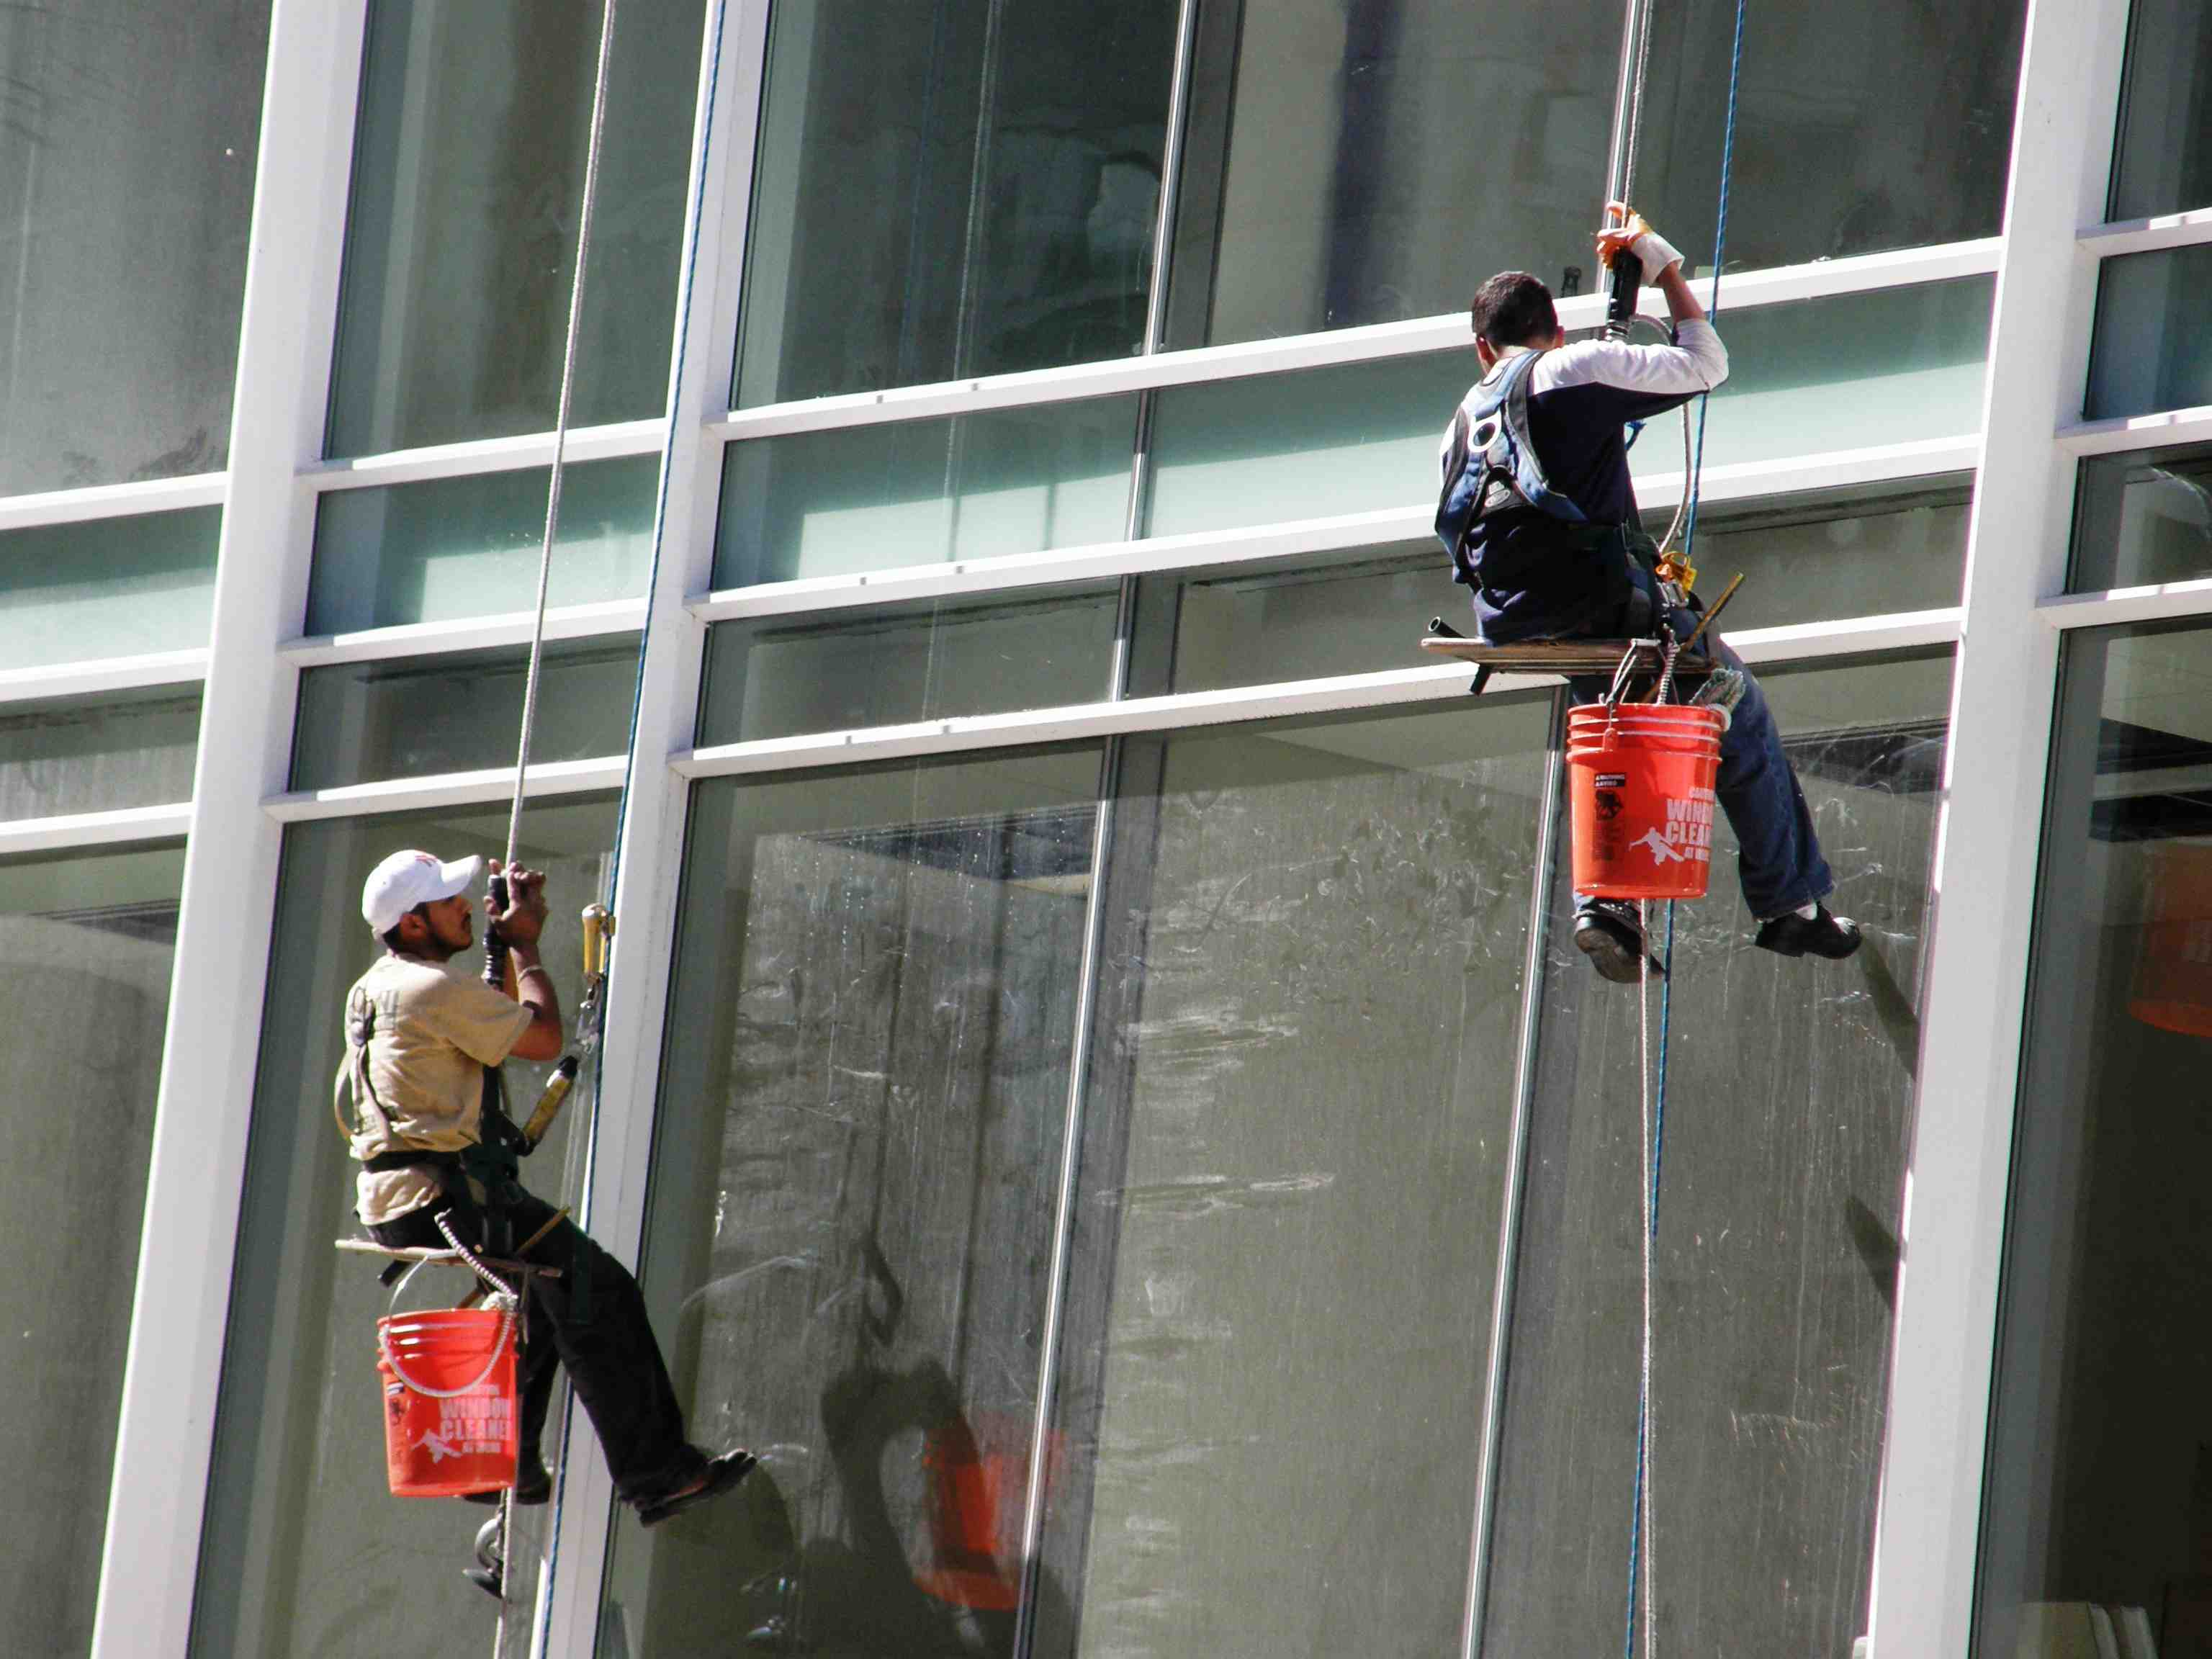 New York Construction Accident Lawyer From The Perecman